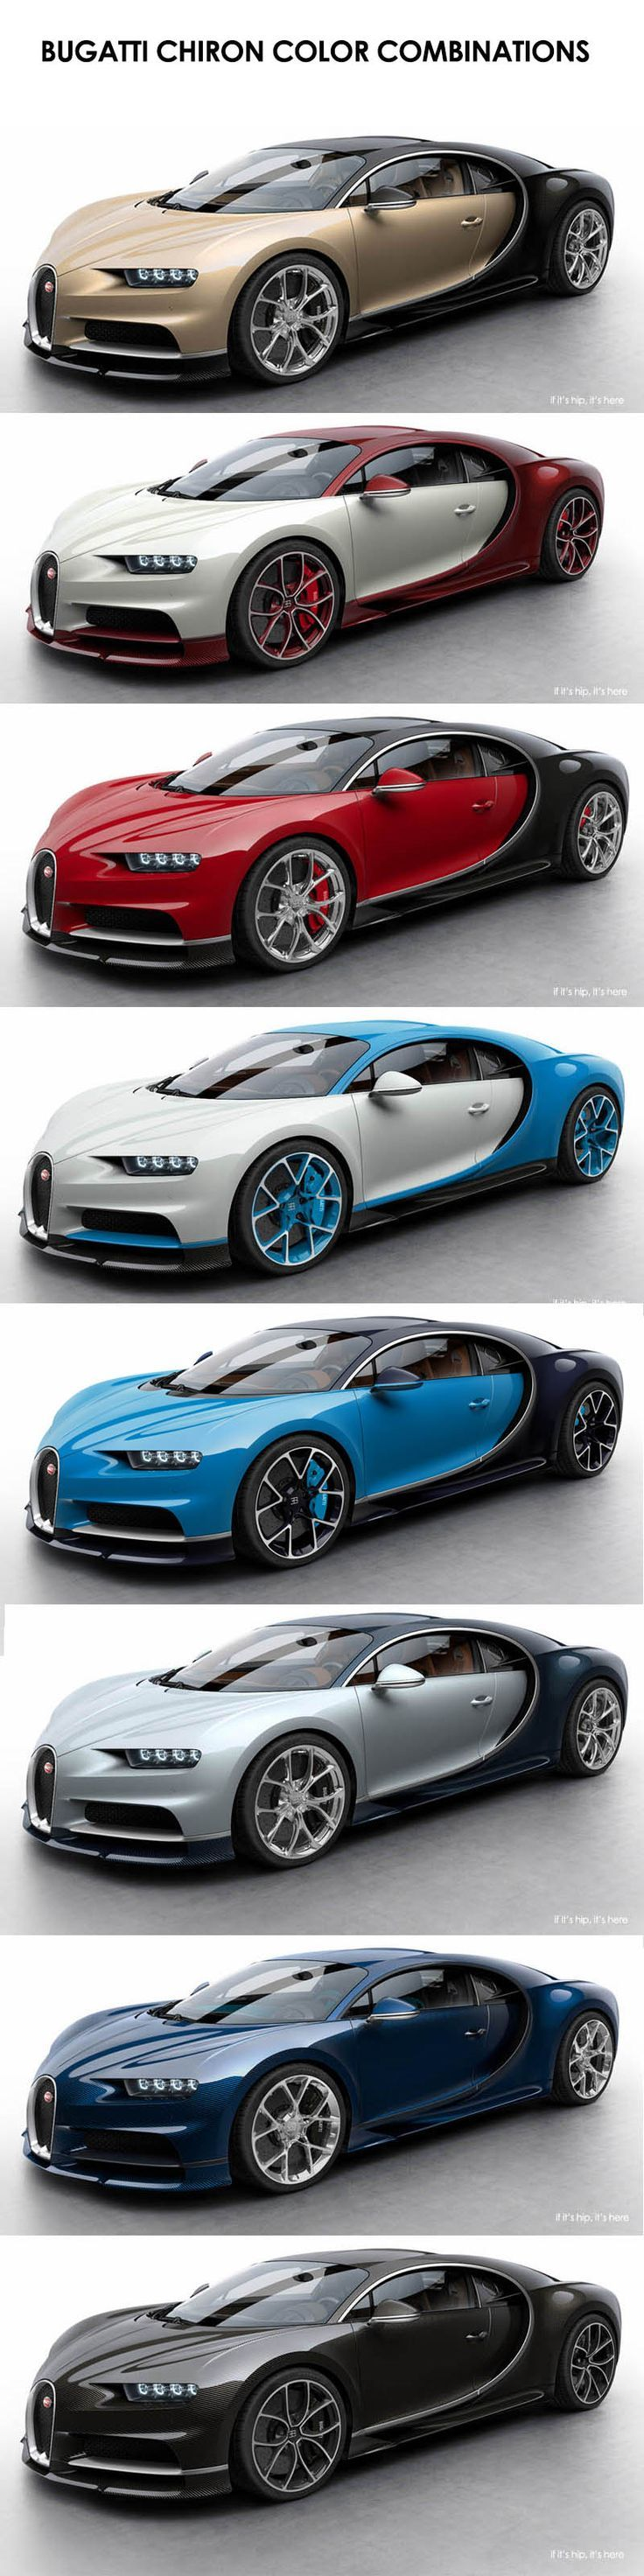 8944caeee27d5d7a6535bcd98b7580db--i-pick-colour-combinations Surprising Bugatti Veyron Price In Bahrain Cars Trend